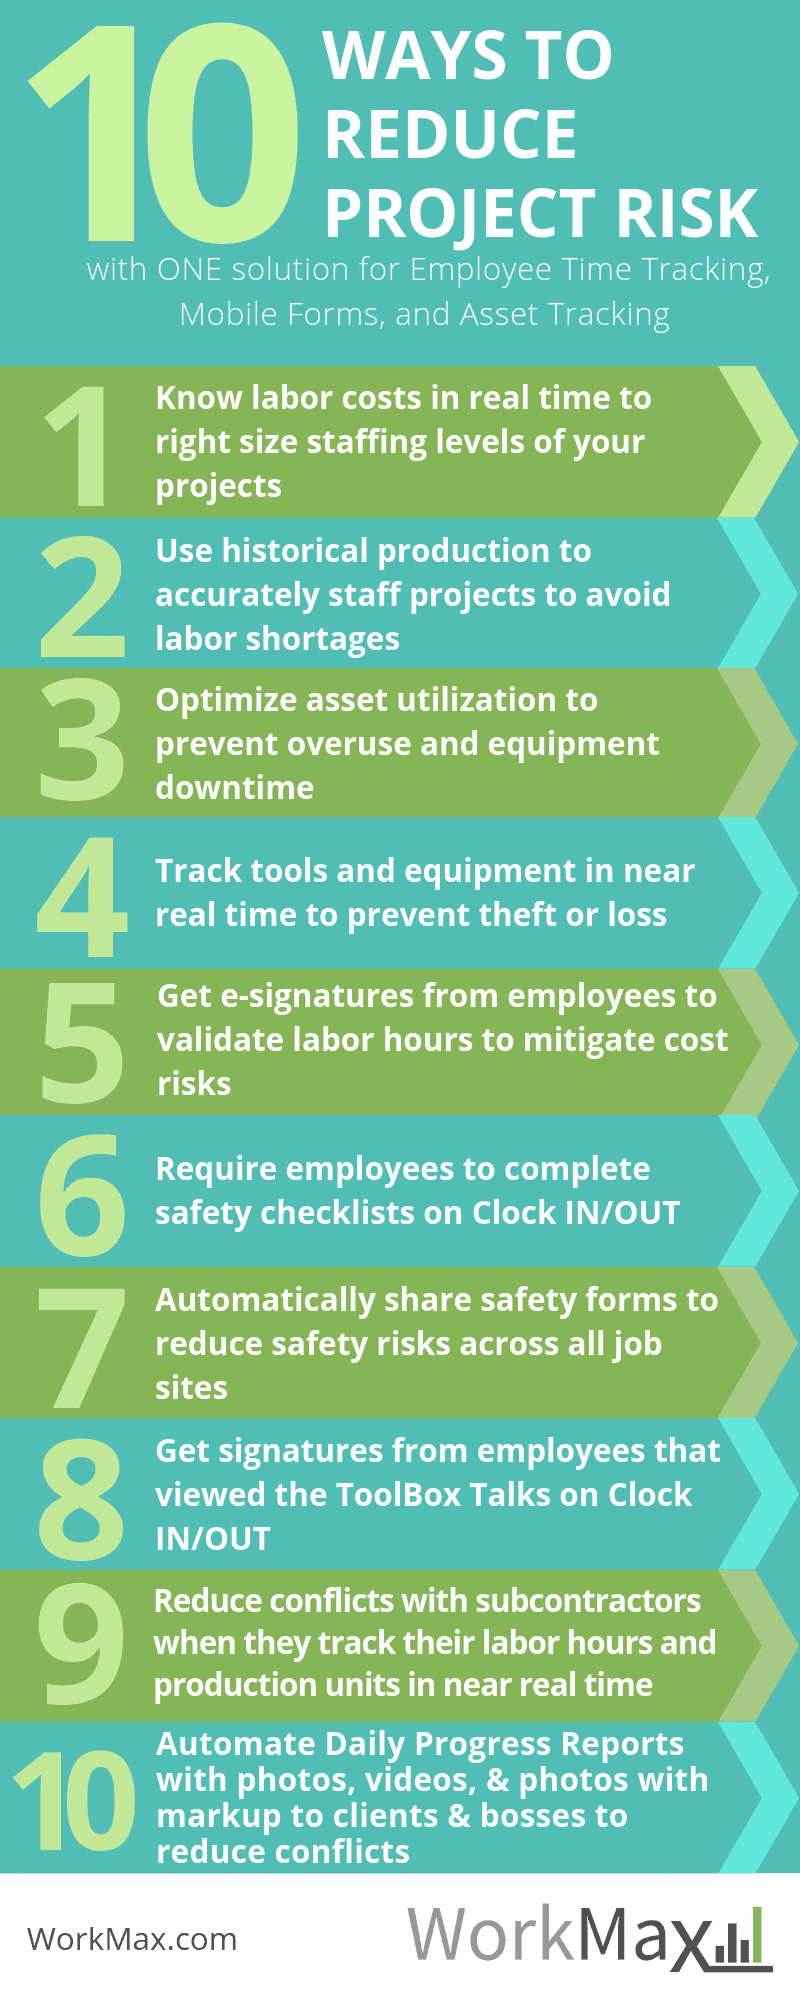 INFOGRAPHIC 10 Ways To Reduce Project Risk with ONE solution for Employee TIME Tracking asset tracking and mobile forms. 1